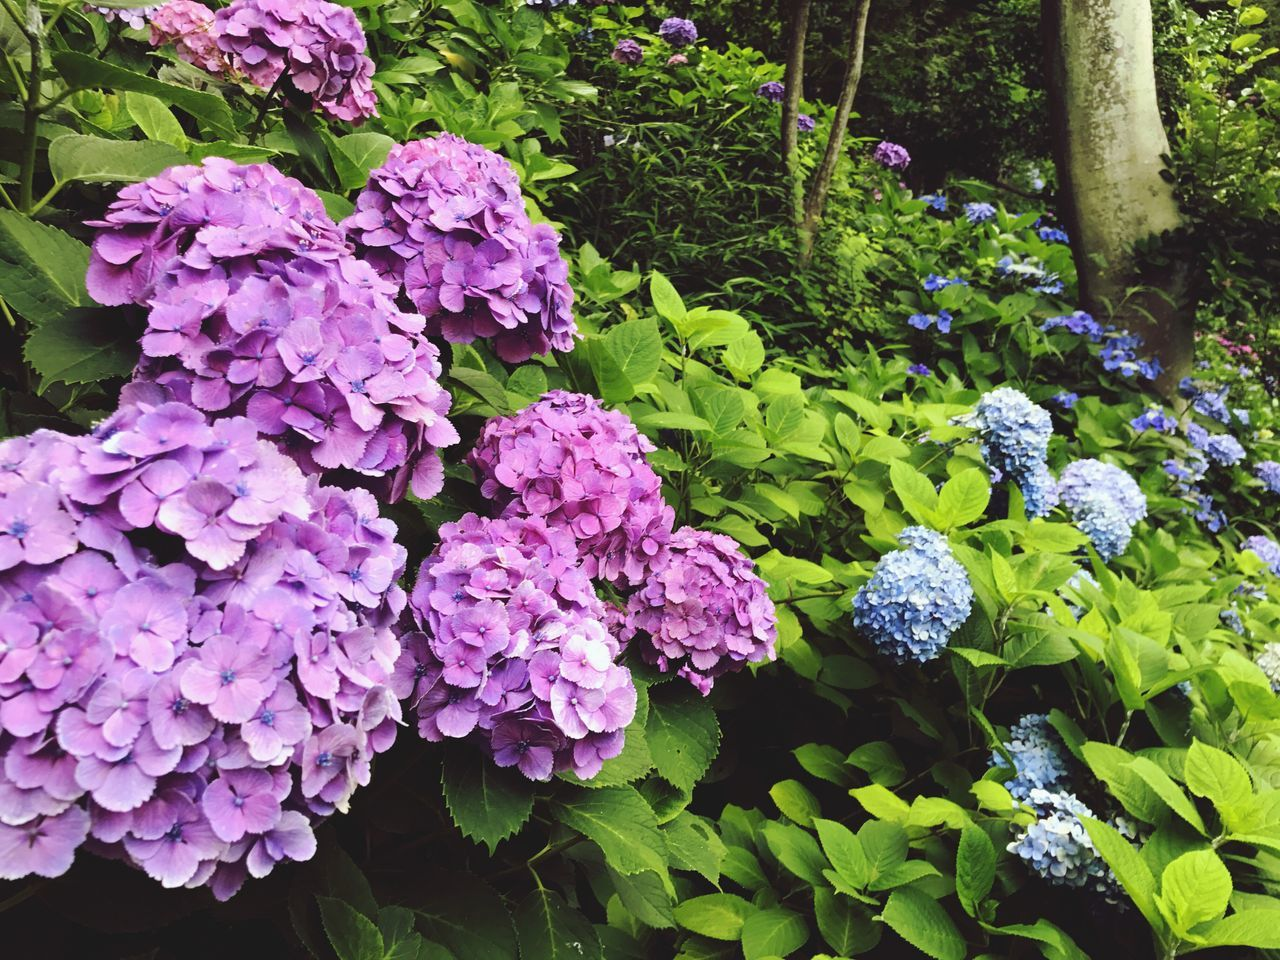 growth, flower, nature, beauty in nature, plant, purple, freshness, fragility, day, outdoors, hydrangea, no people, leaf, close-up, flower head